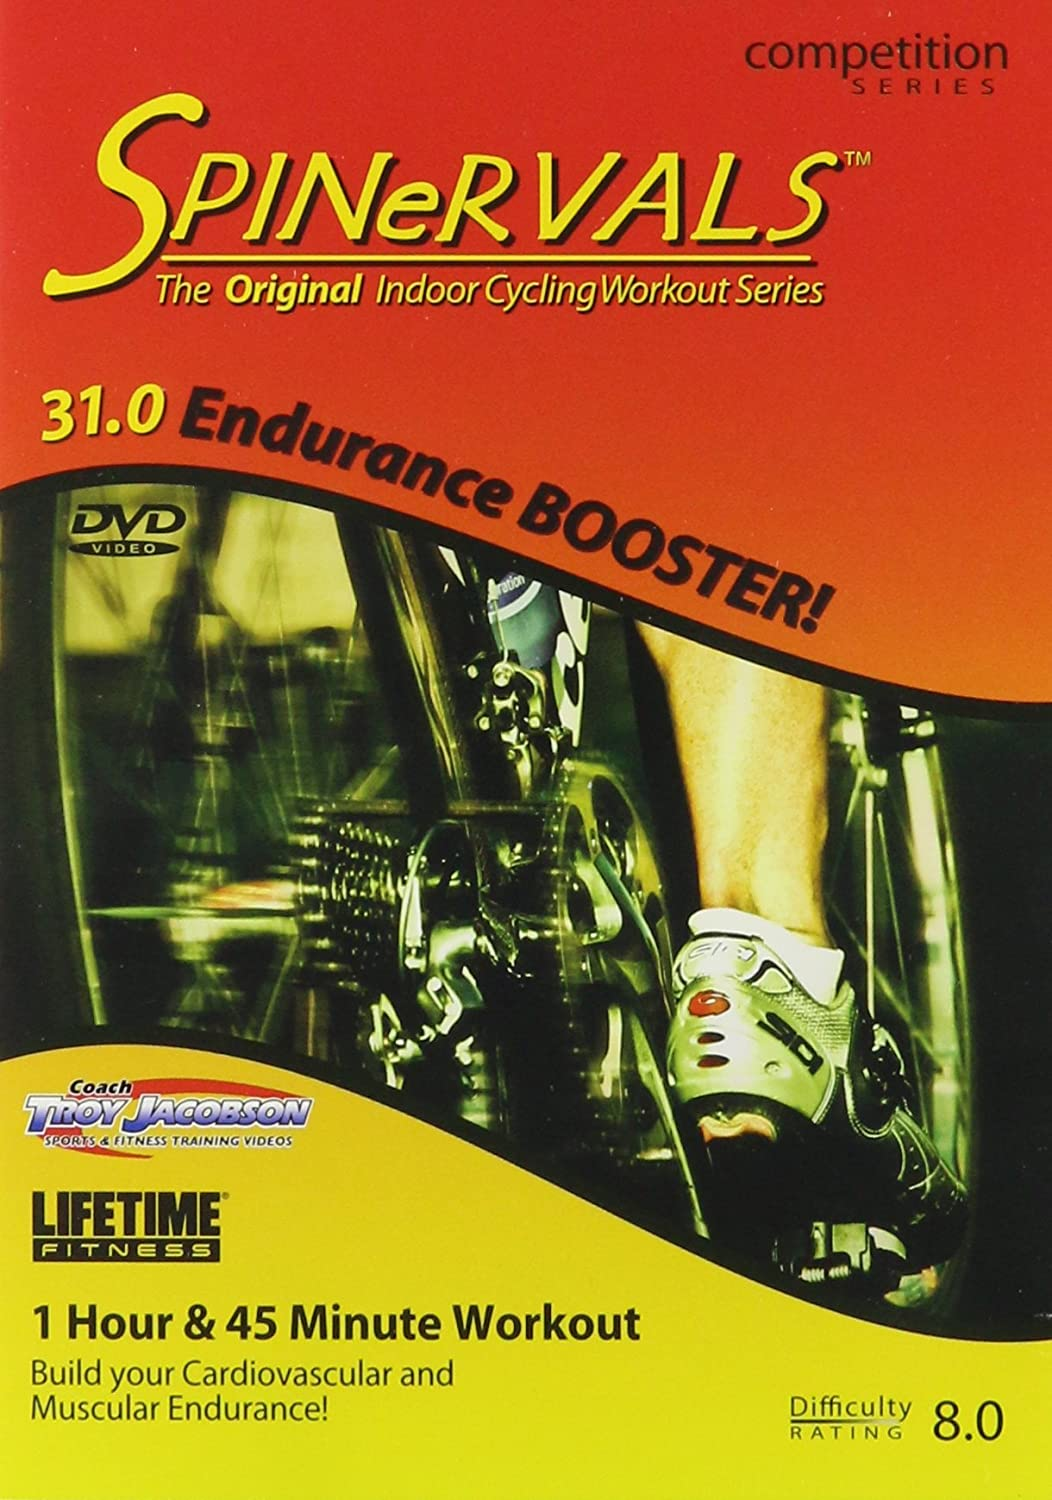 Spinervals 31.0 Endurance Booster DVD